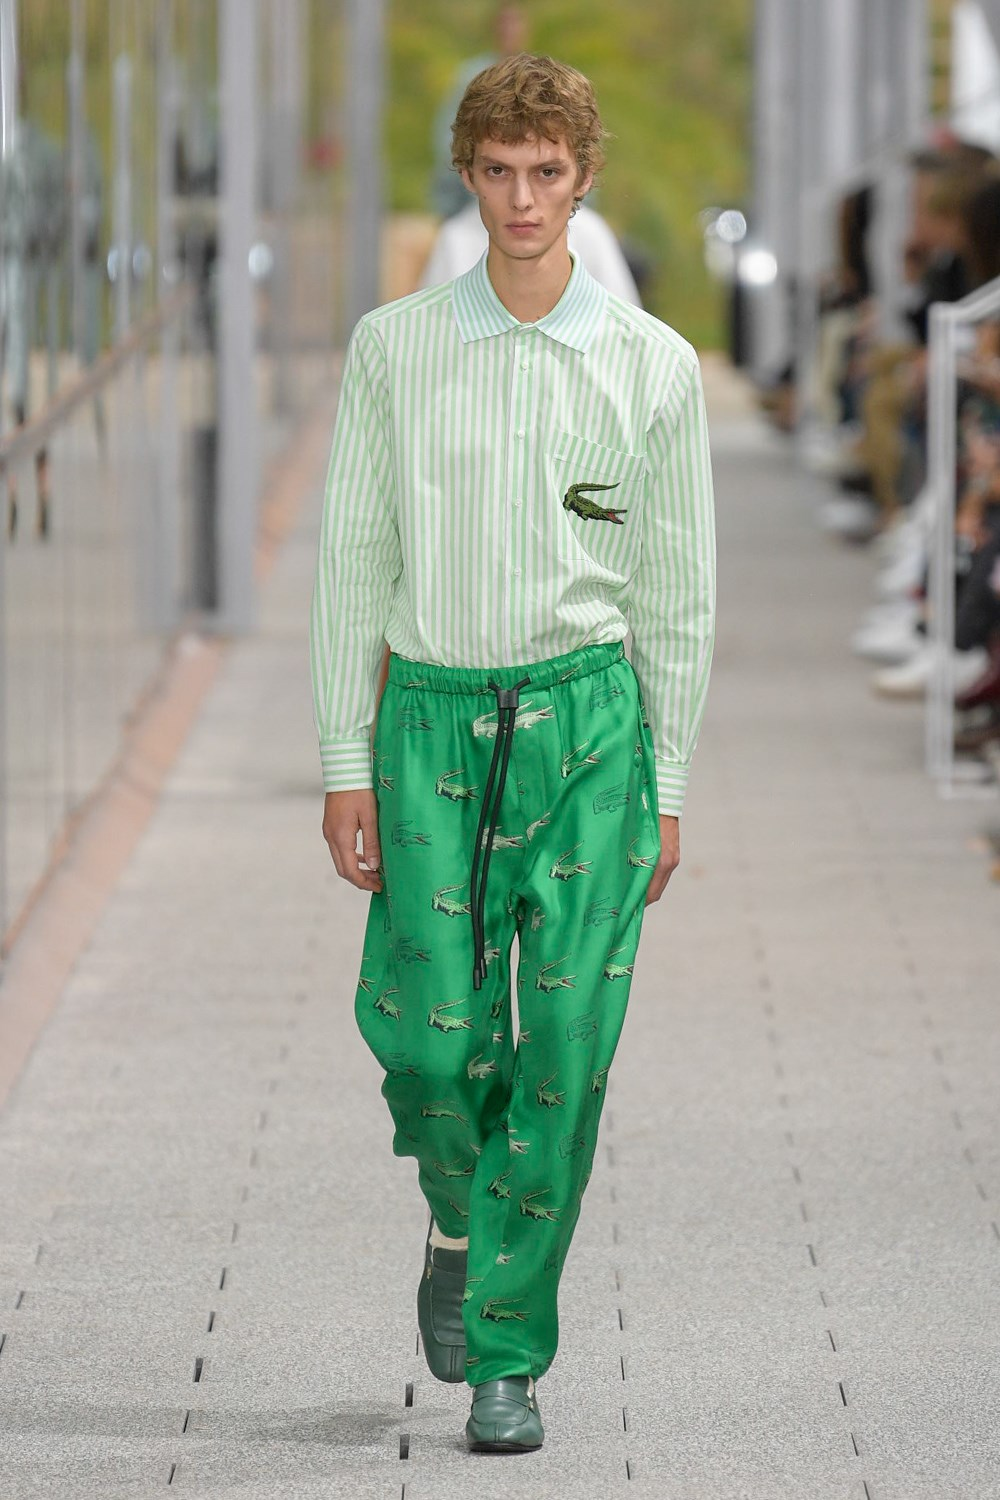 Lacoste - Printemps/Été 2020 - Paris Fashion Week